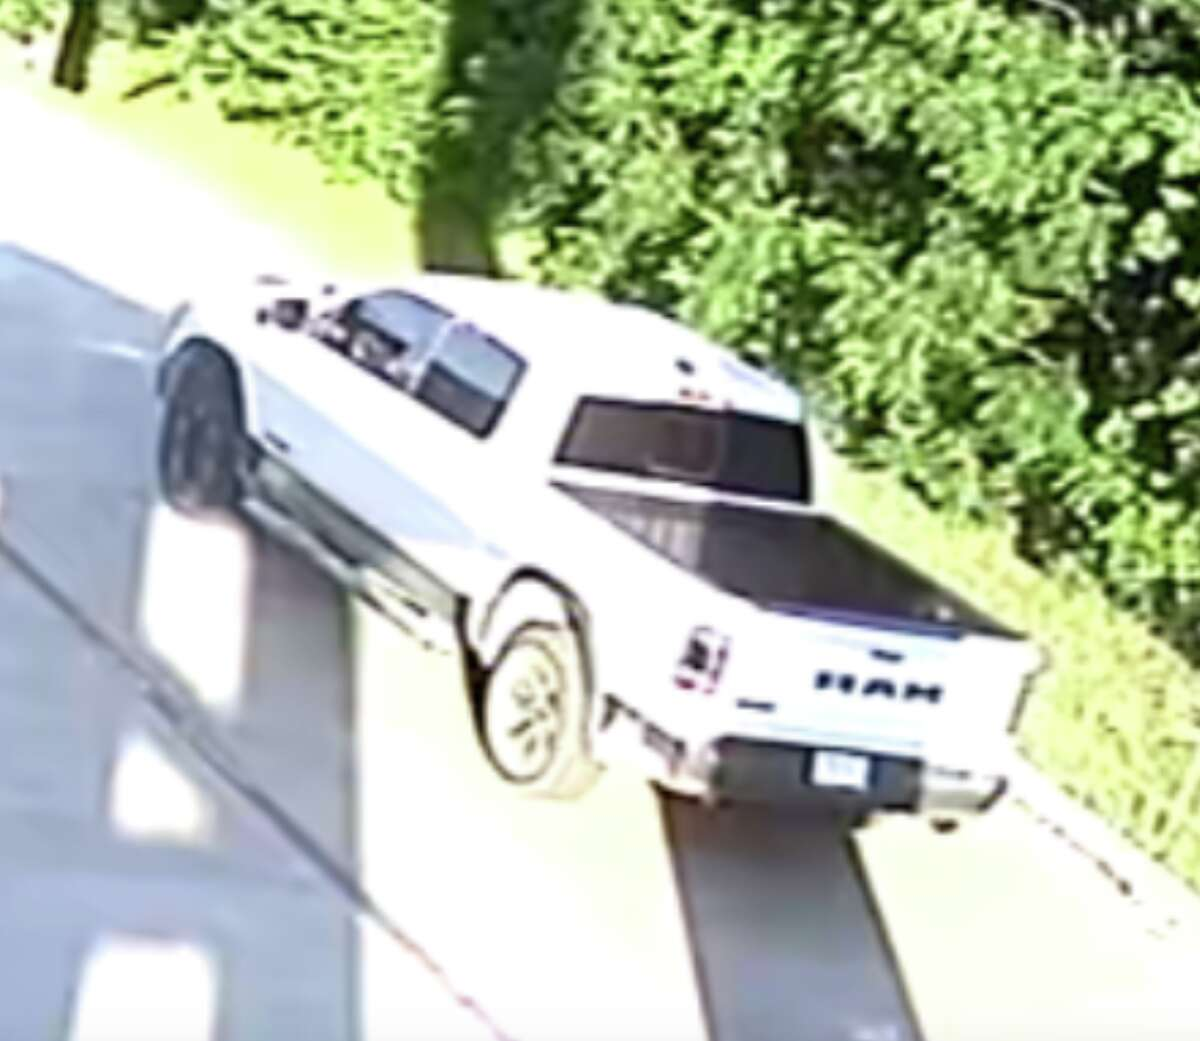 Officials shared photos of a pickup truck seen fleeing the scene after a man was shot and killed at the Super 8 Motel on Roland Ave.